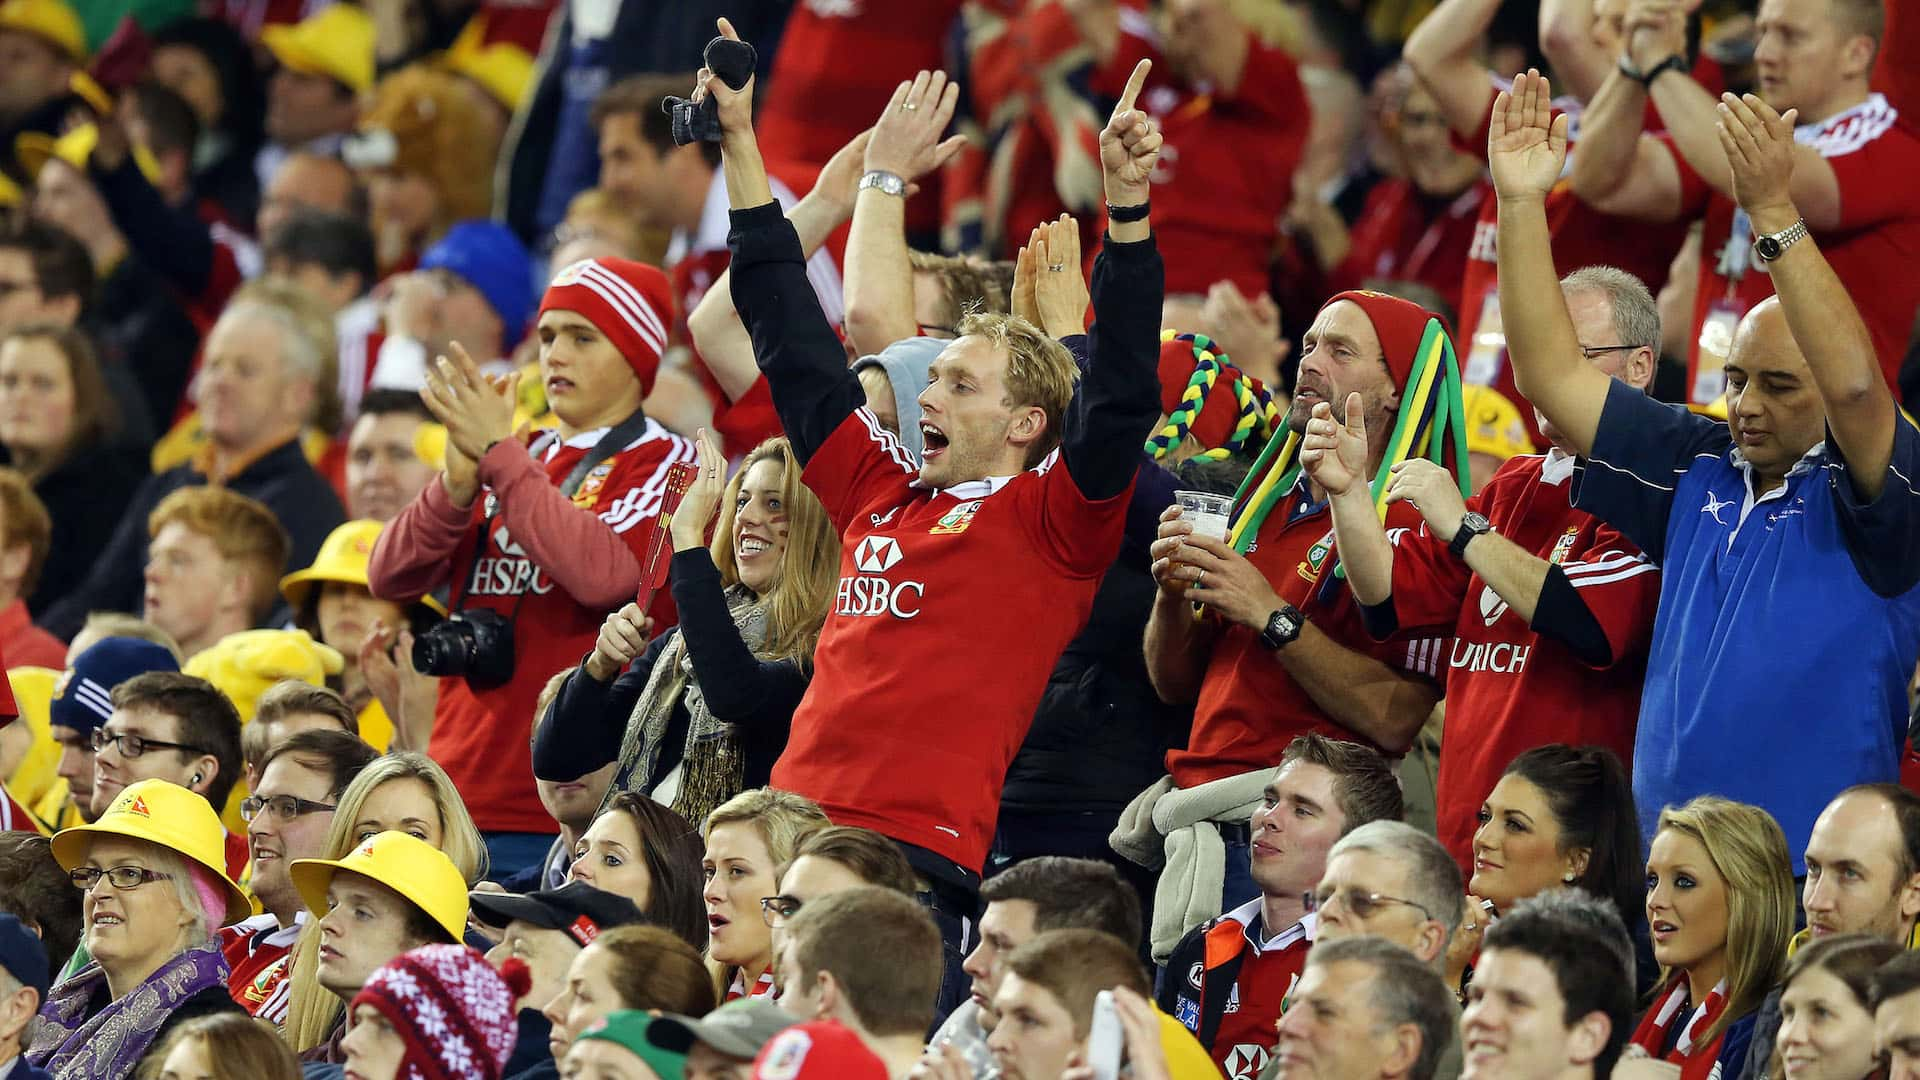 Lion's fans cheer on the team in australia 2013